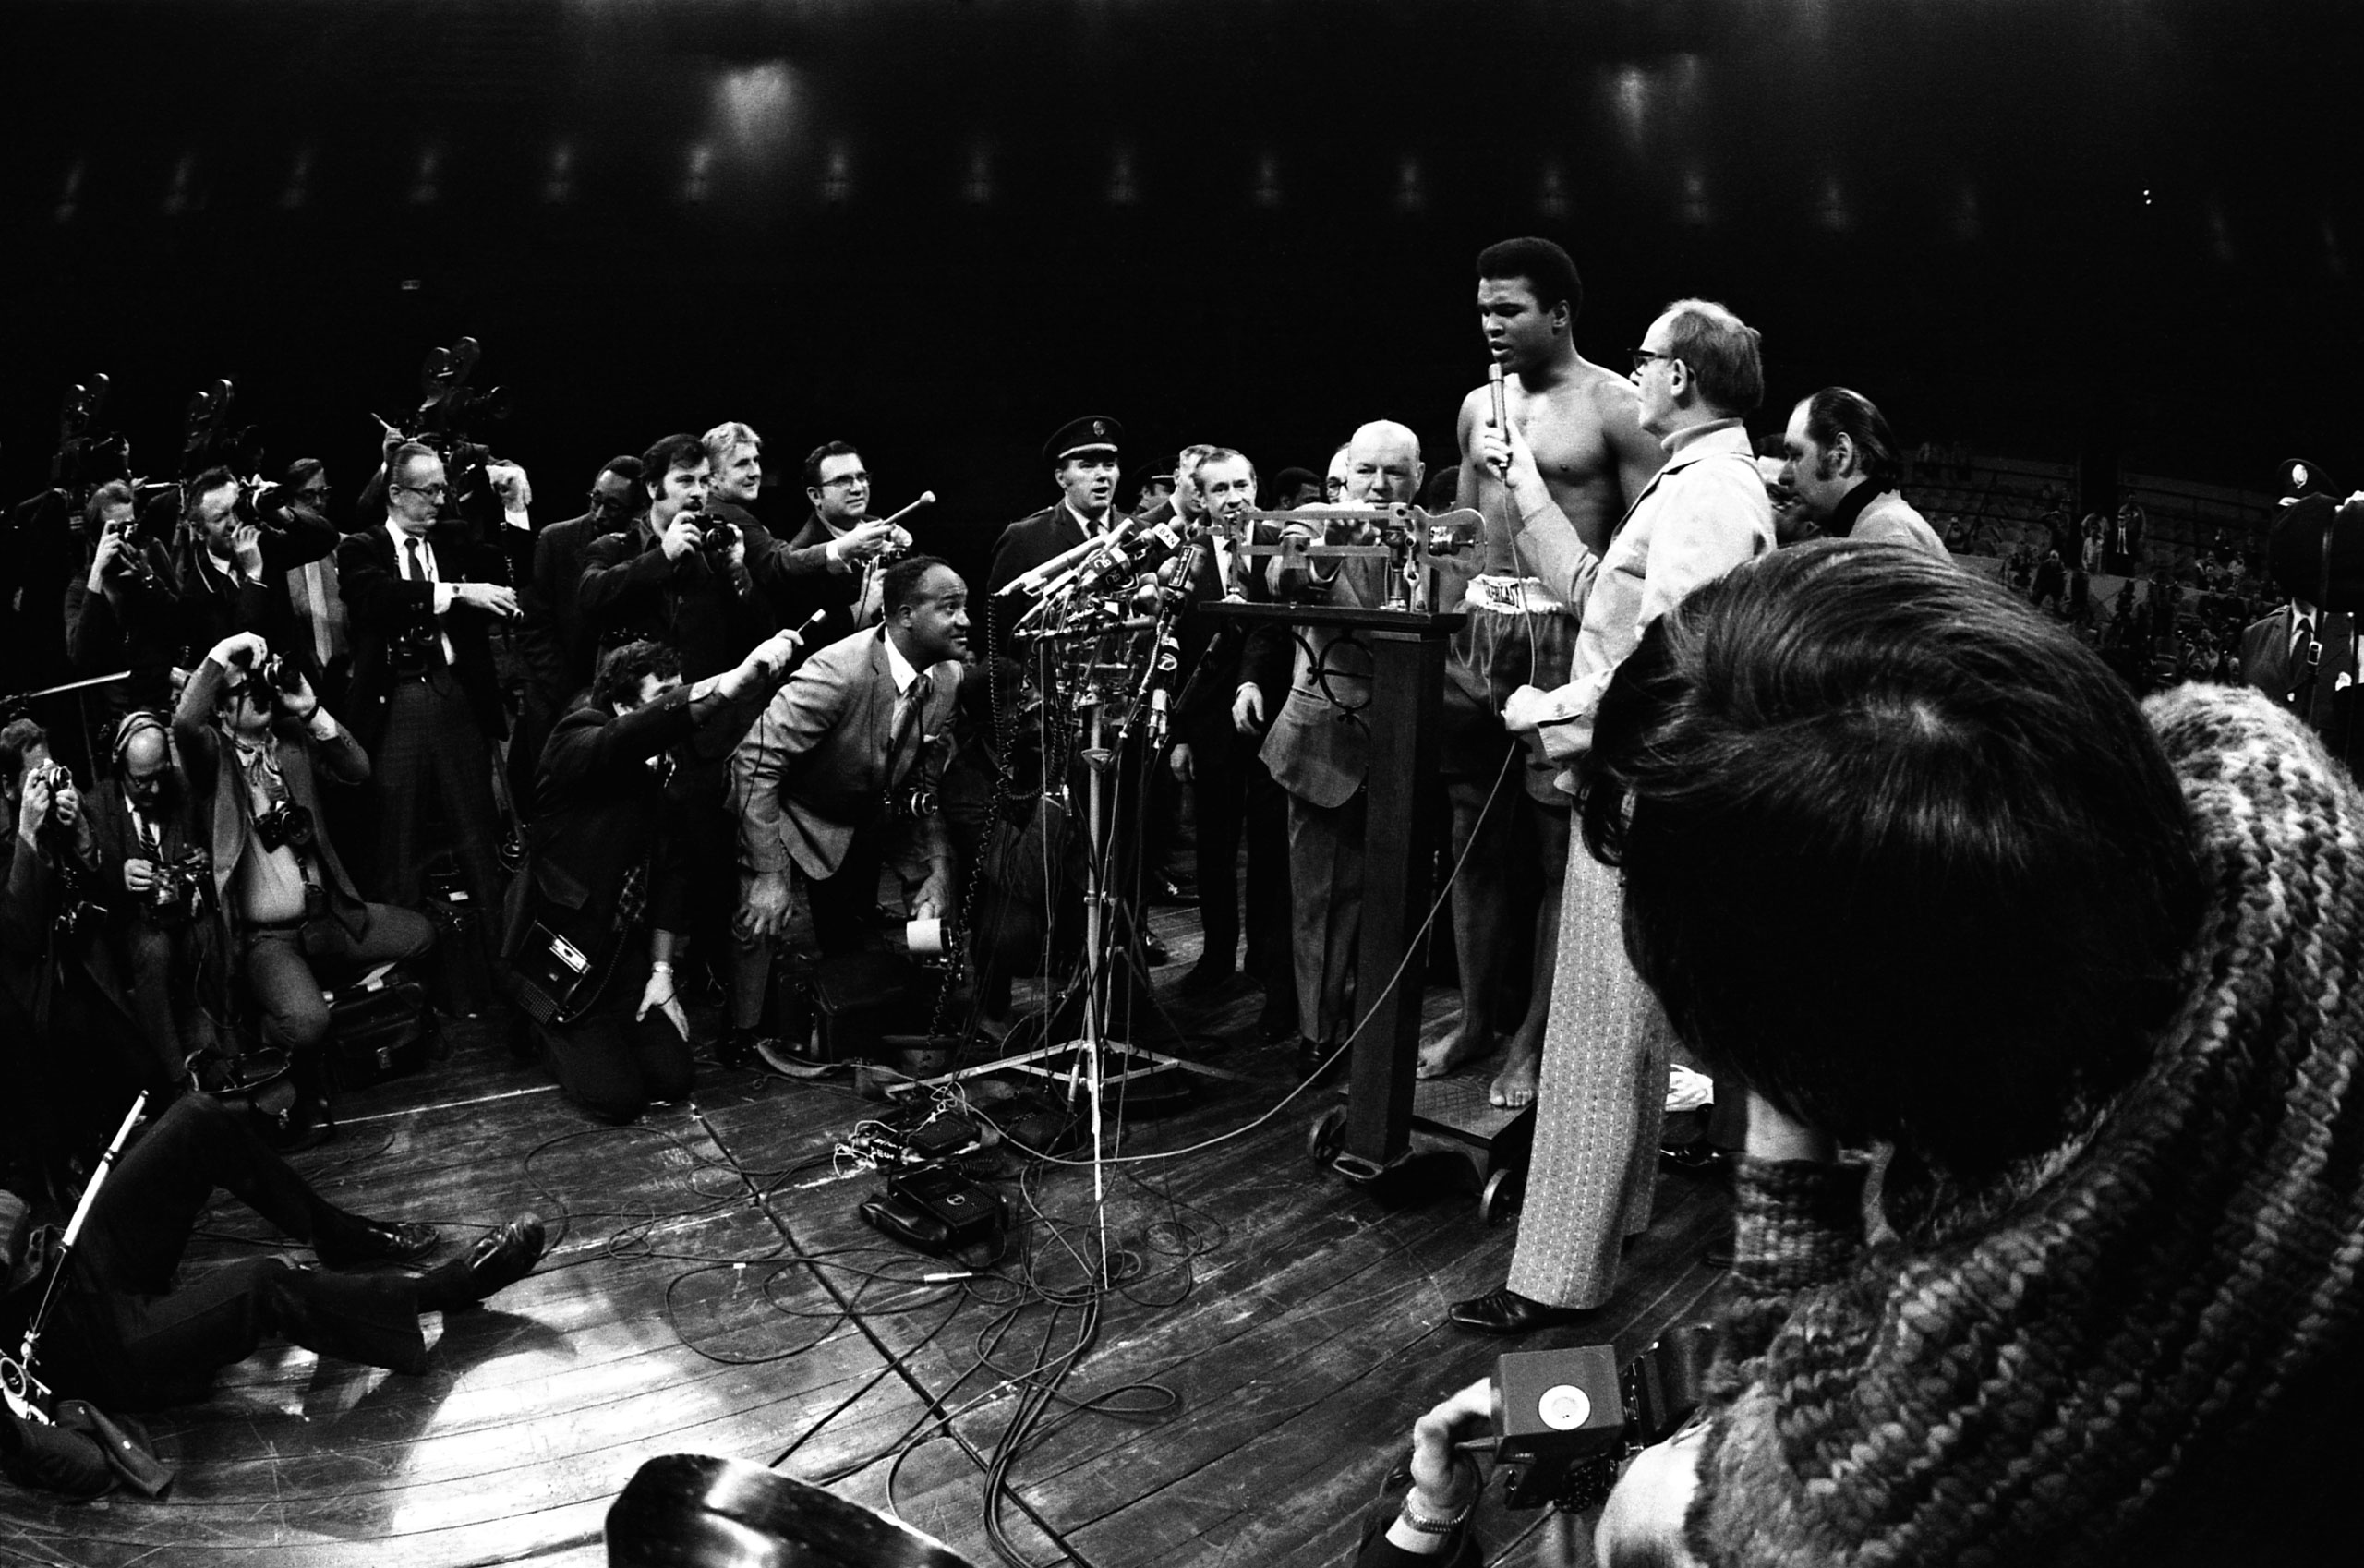 Ali speaks to the press during a pre-fight weigh-in at Madison Square Garden in New York City in March 1971 ahead of what would become known as The Fight of the Century where Ali would go 15 rounds with champion Joe Frazier.